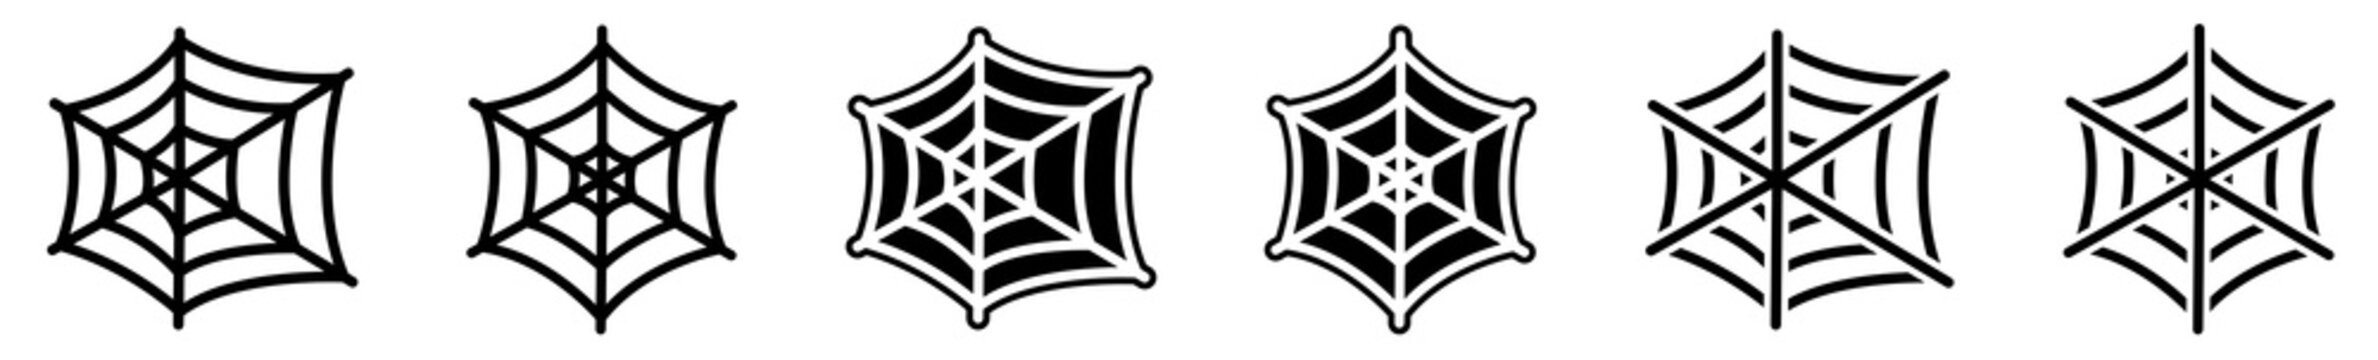 Spider Web Icon Black | Halloween Illustration | Webs Symbol | Creepy Net Logo | Spiderweb Sign | Isolated | Variations